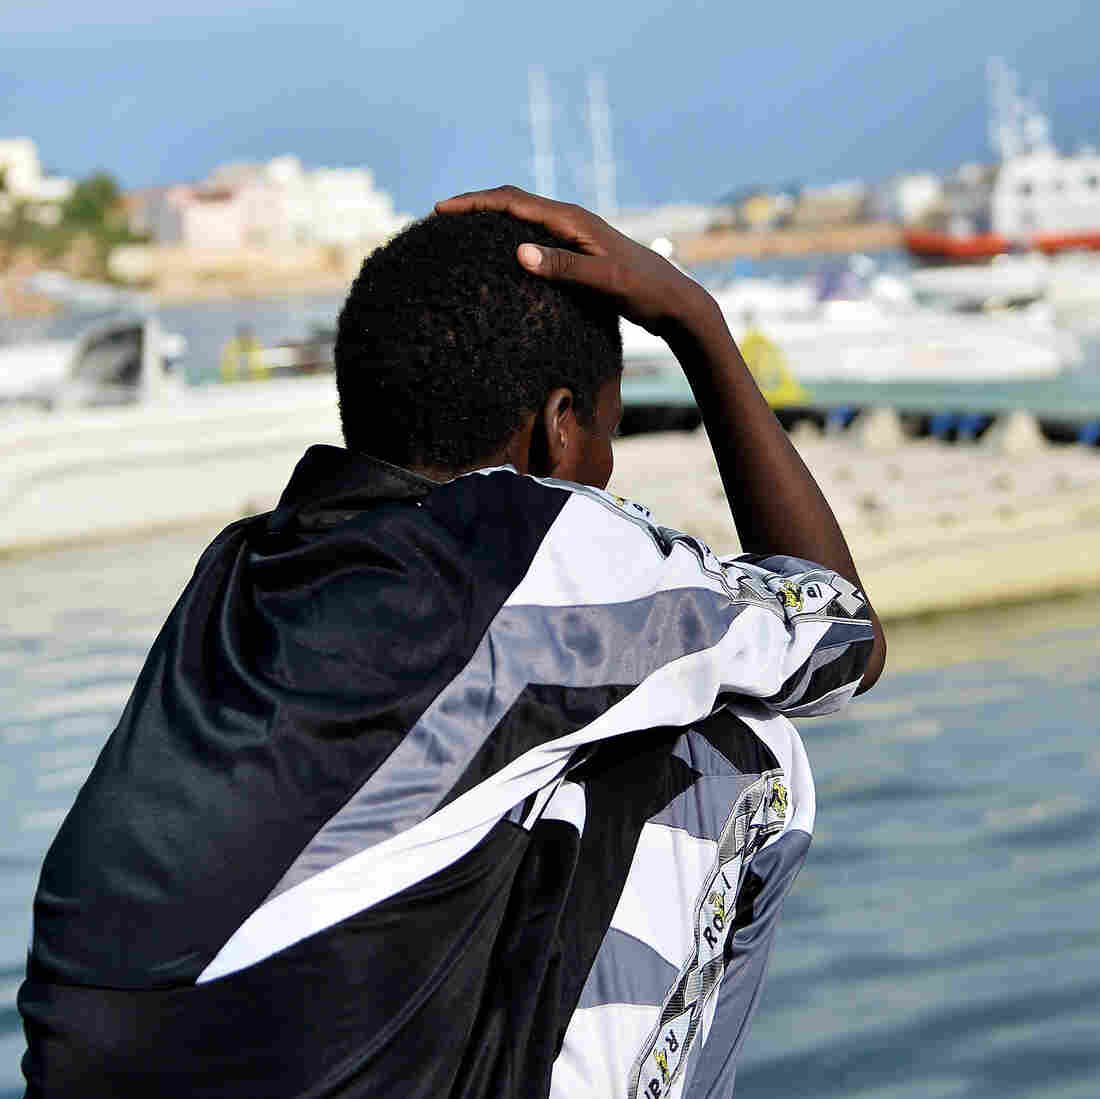 After Boat Tragedy, Calls For A Unified European Policy